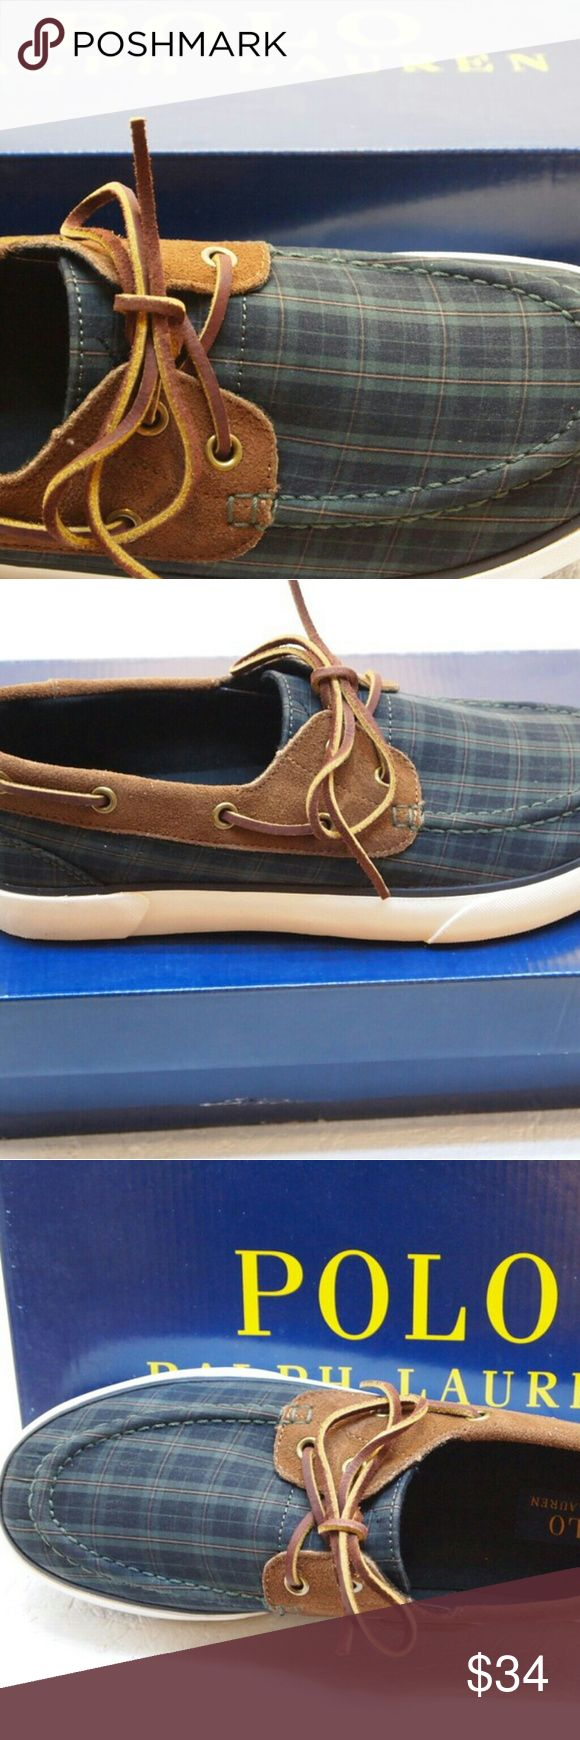 Polo Ralph Lauren mens shoes losfers size 8.5 New New in box. Casual shoes. Polo by Ralph Lauren Shoes Loafers & Slip-Ons